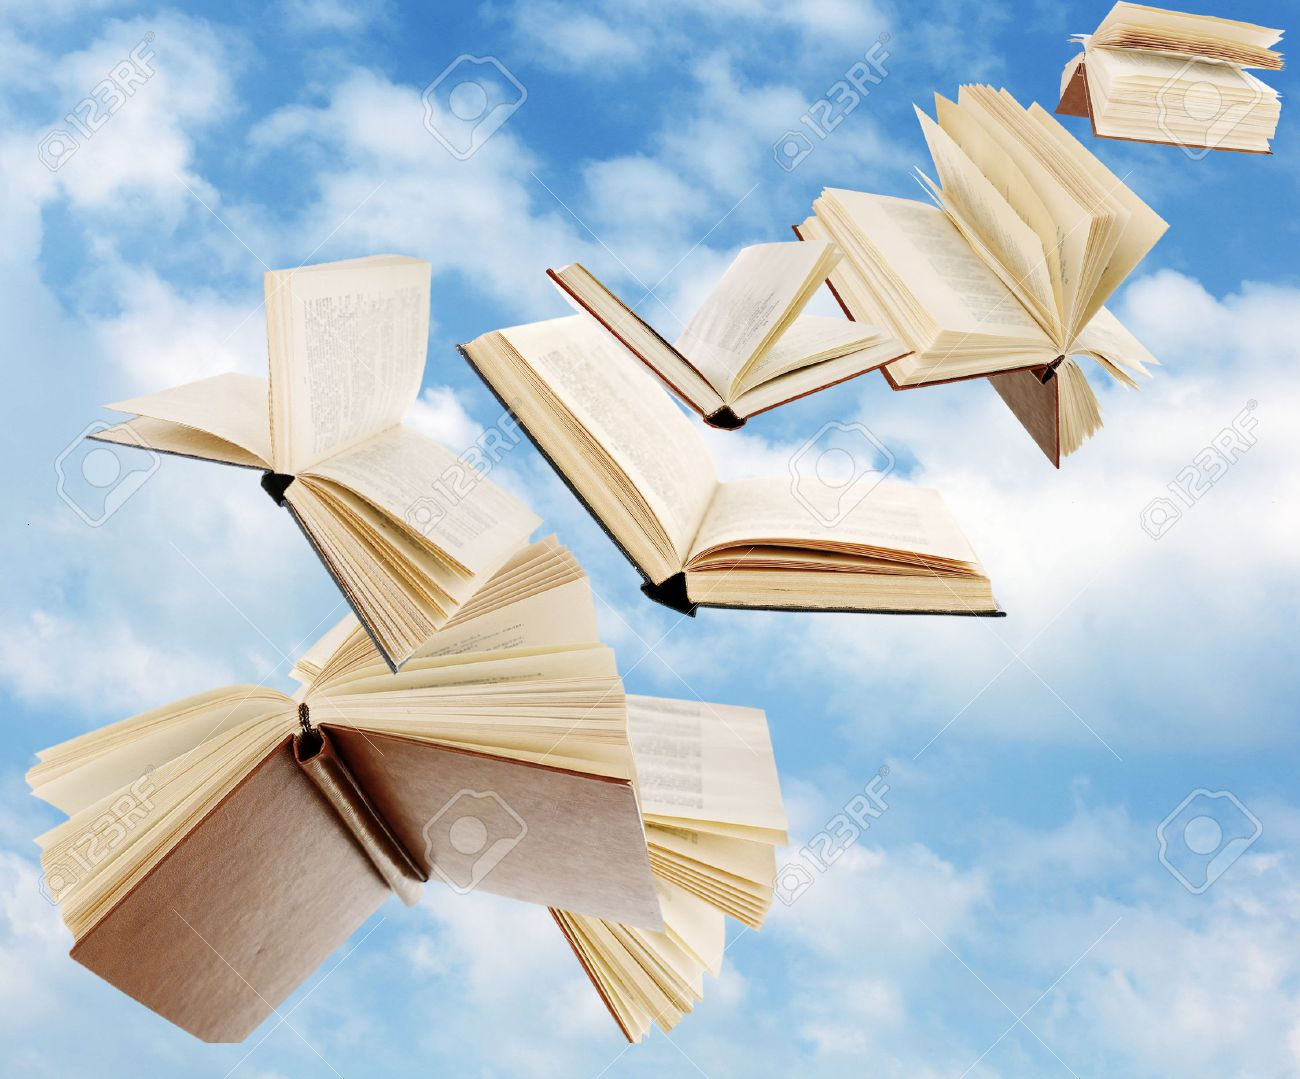 Flying Books On Cloudy Sky Background Stock Photo, Picture And ...